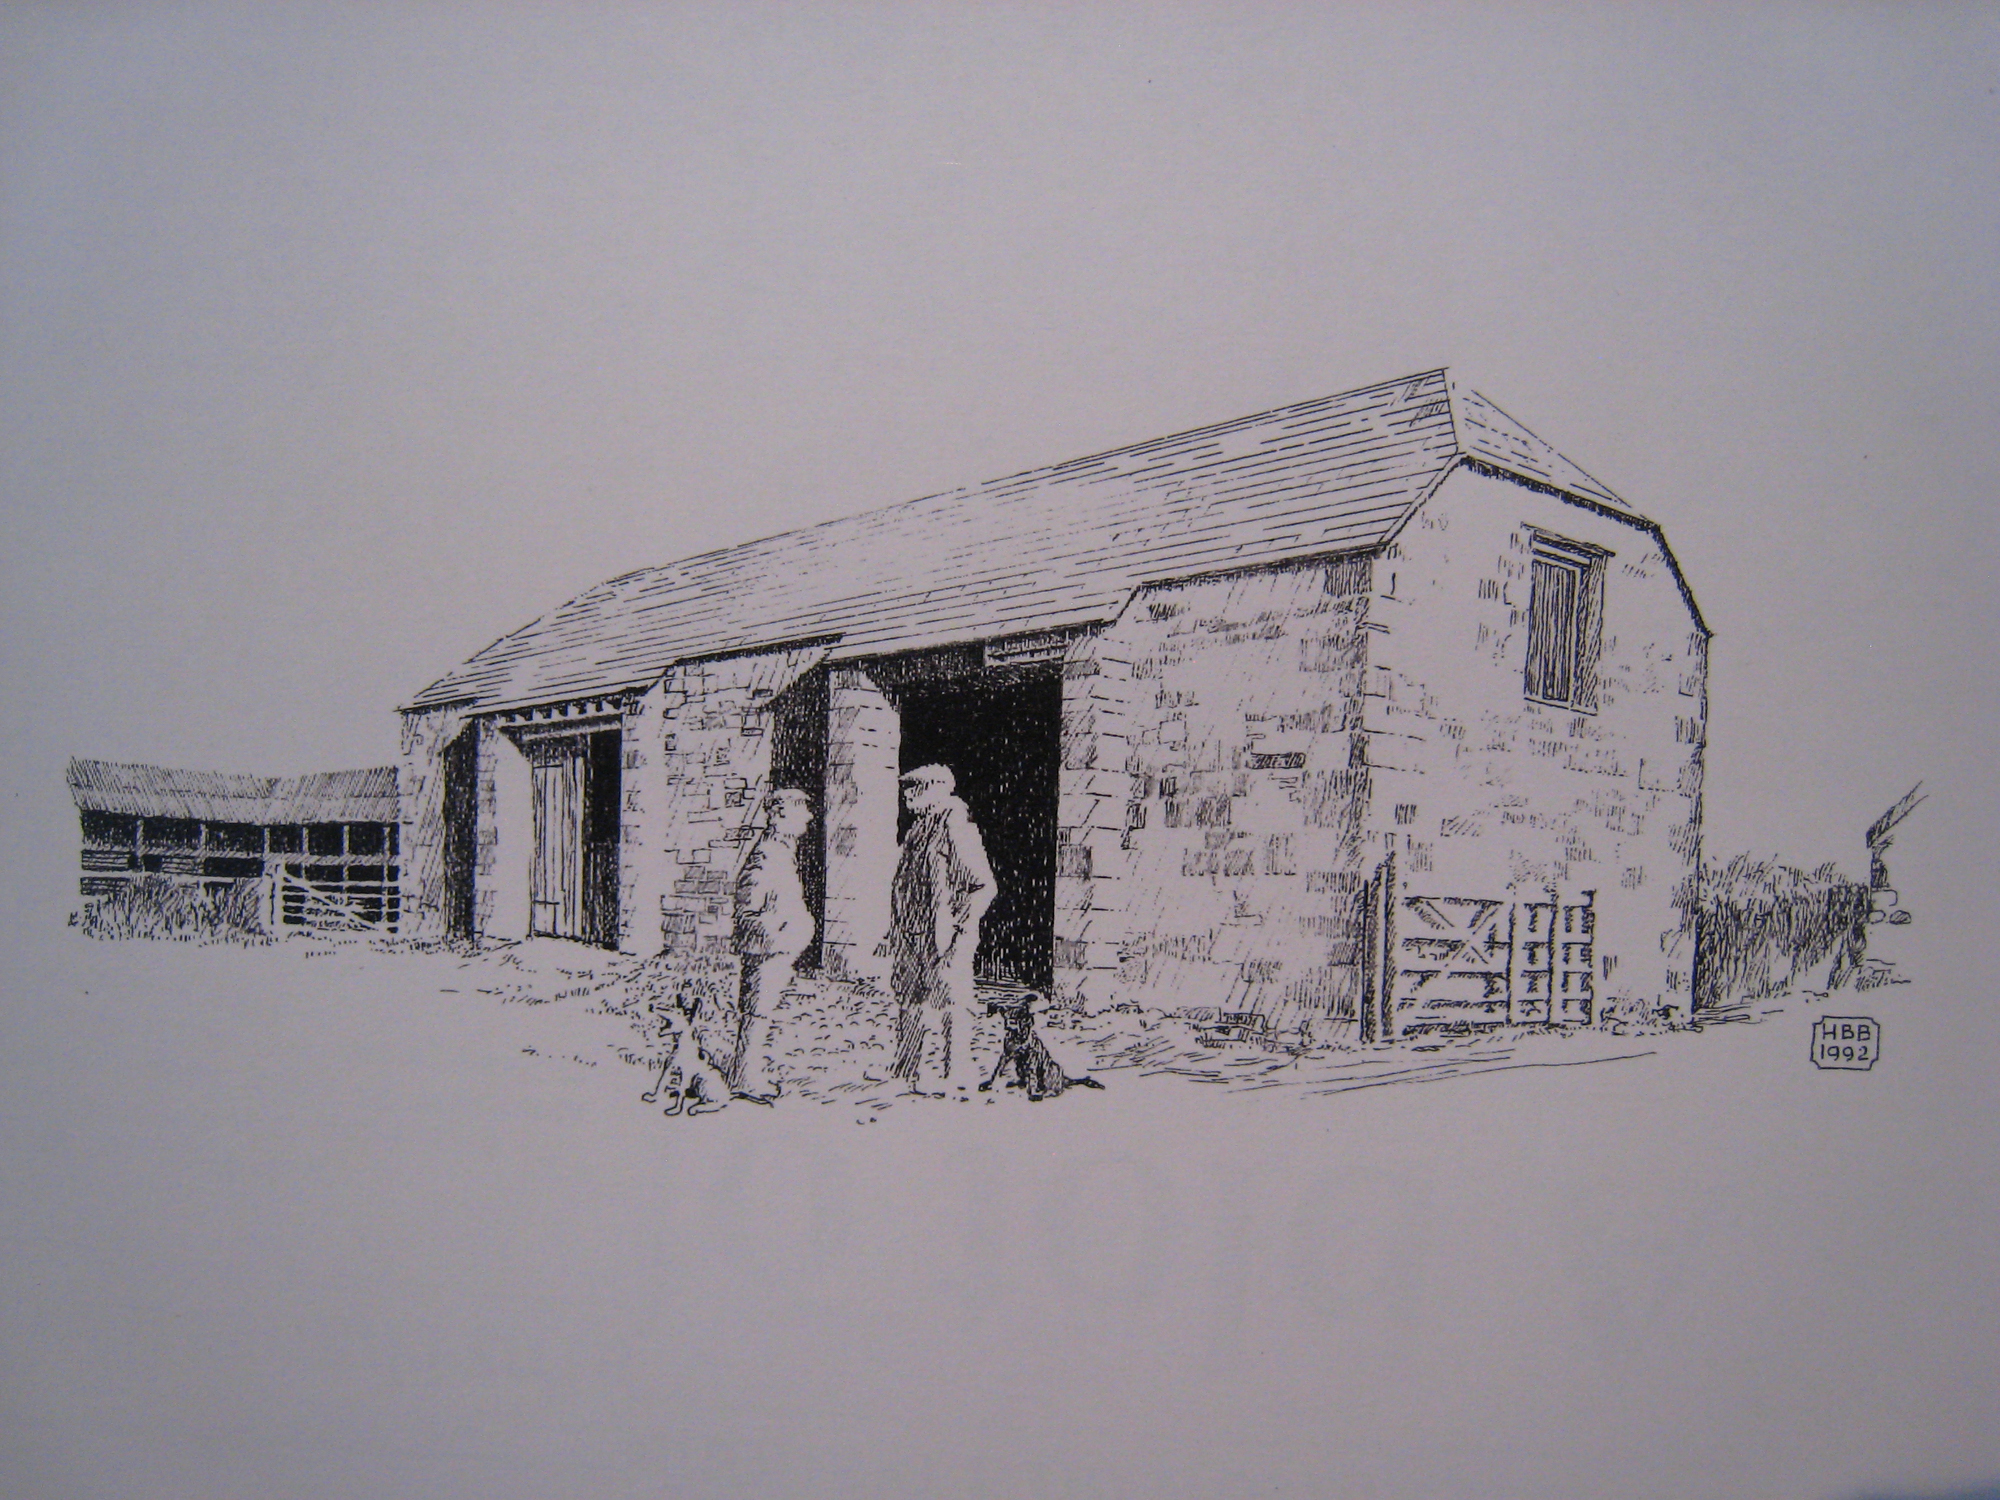 NT Killerton Estate, farm buildings - barn, two men, two dogs